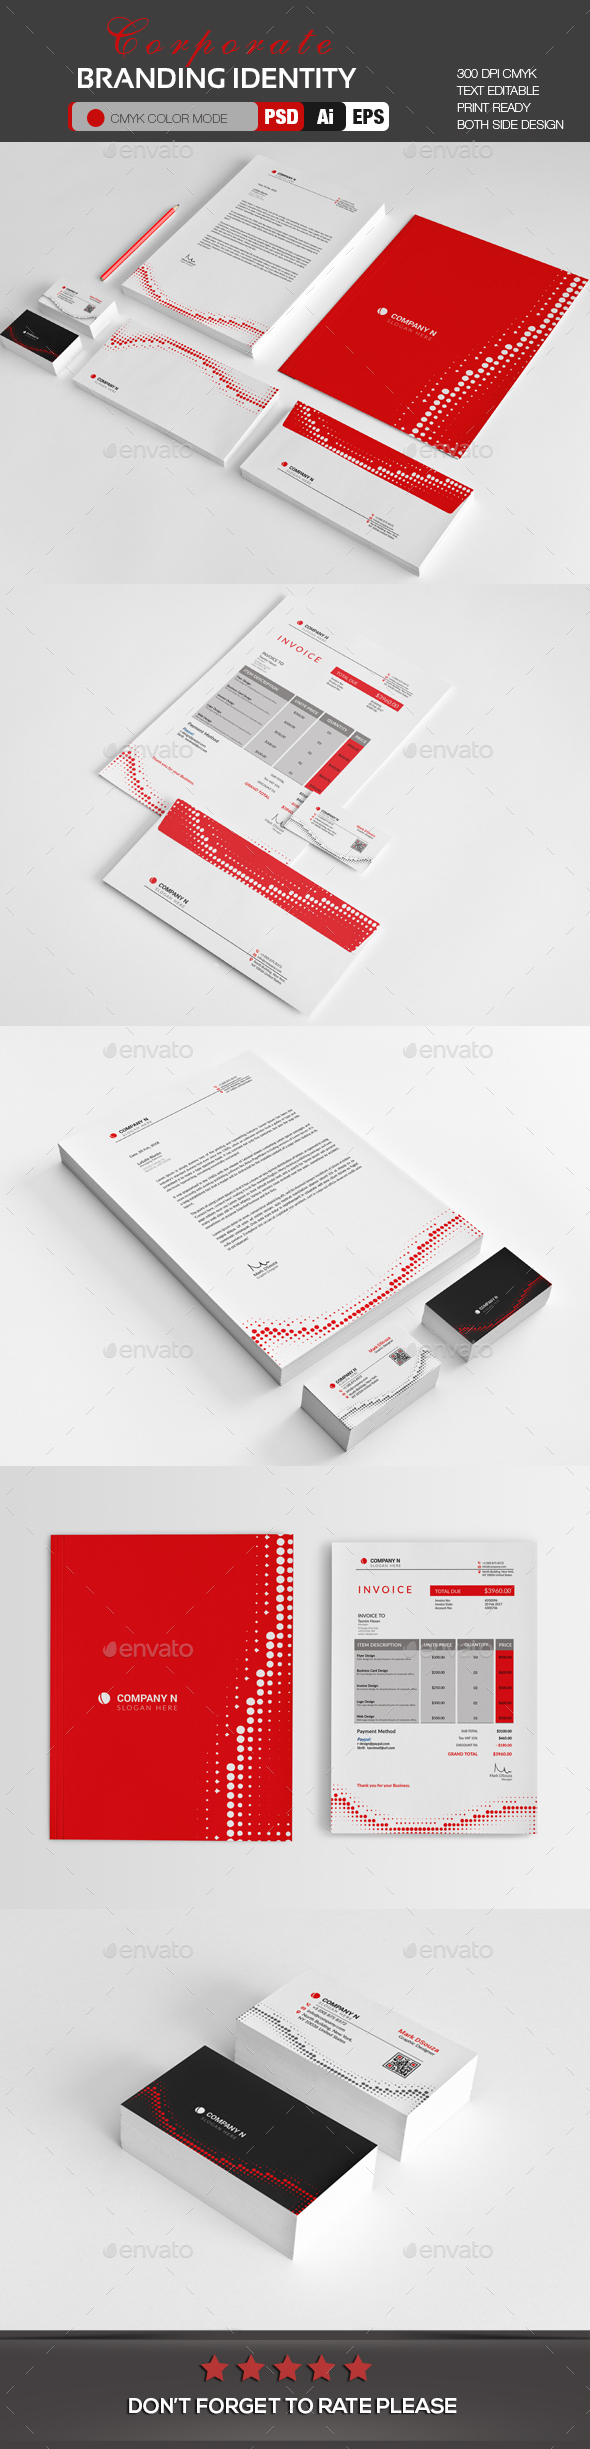 Corporate Branding Identity - Stationery Print Templates